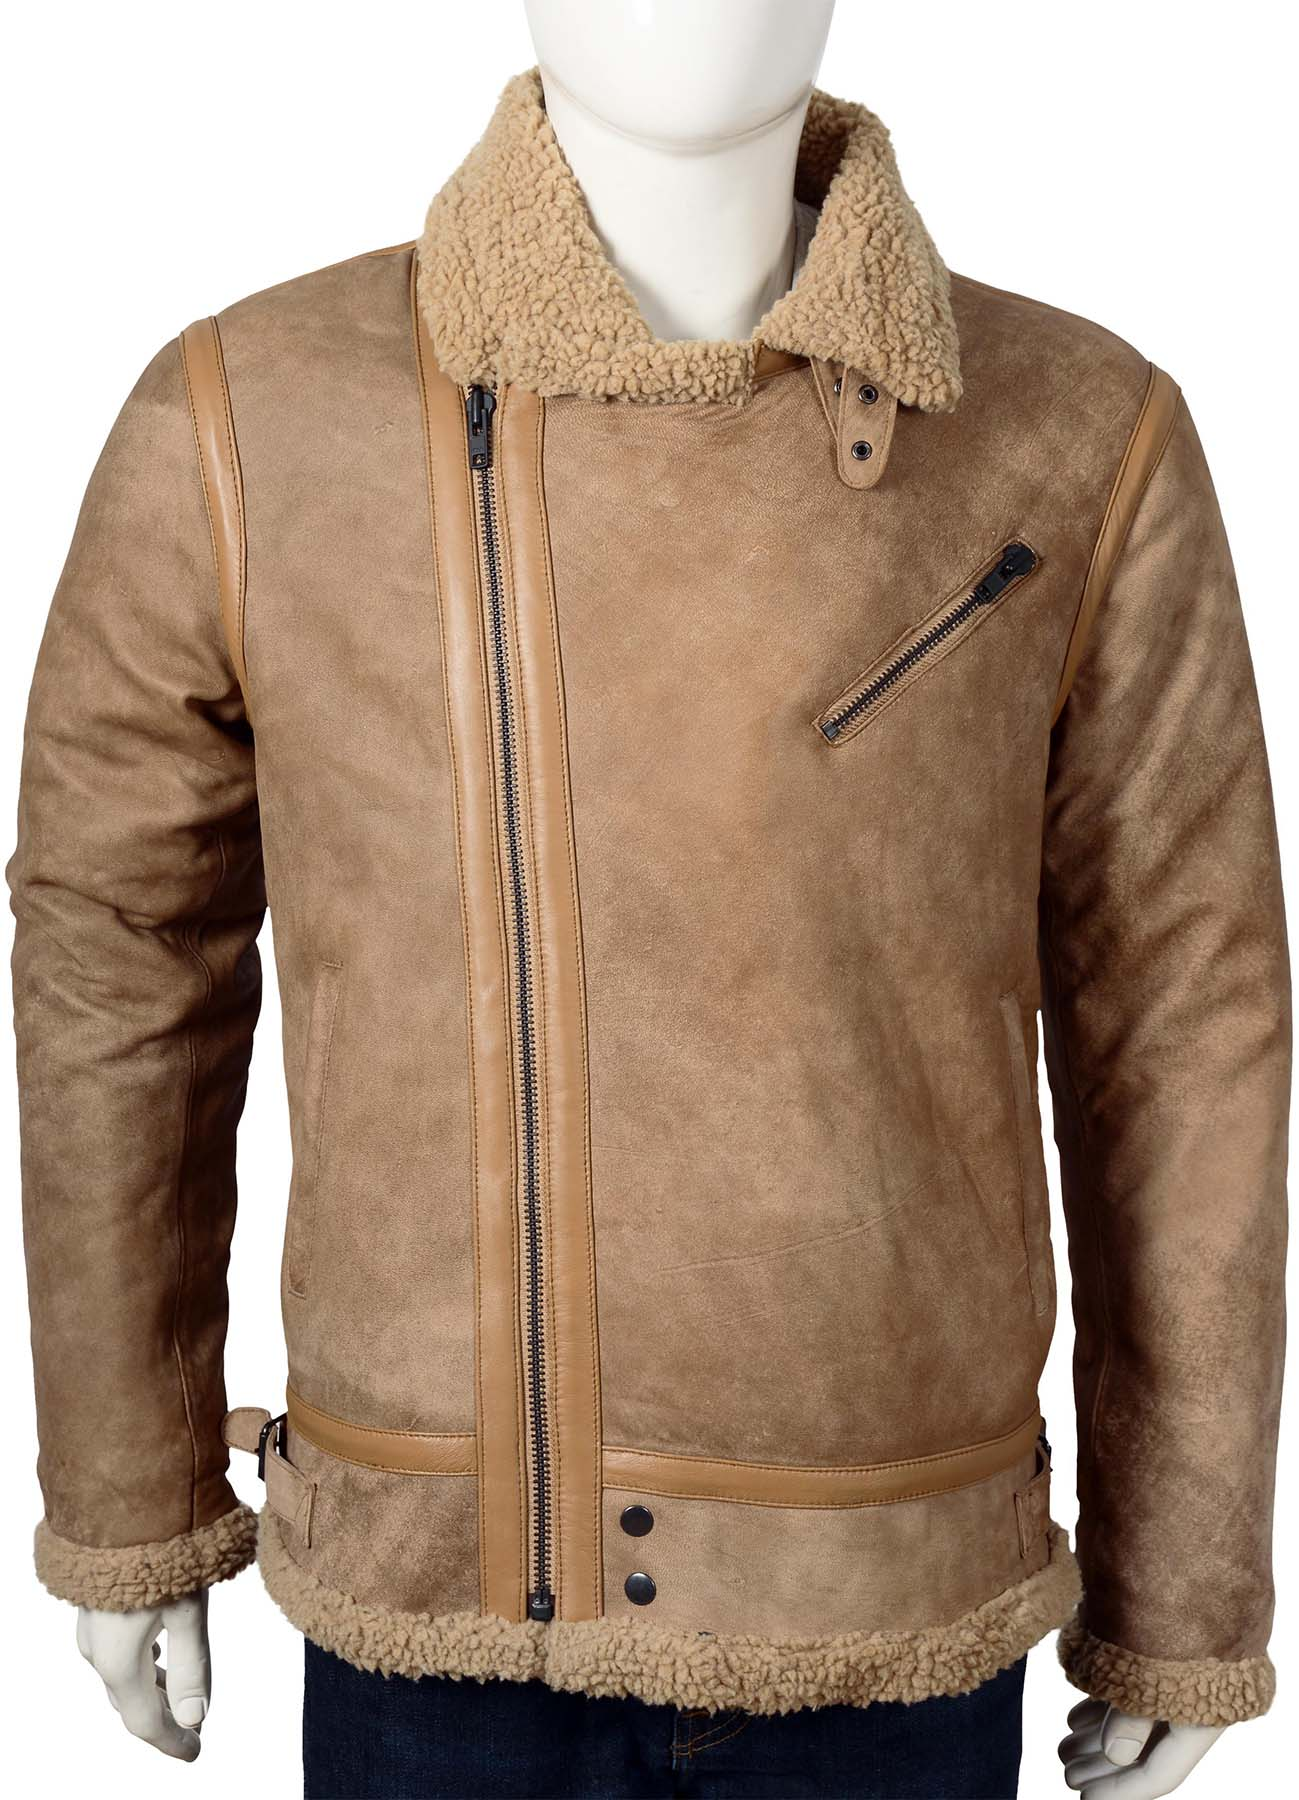 Beige Brown Bomber Leather Jacket With Fake Fur Shearling Jacket